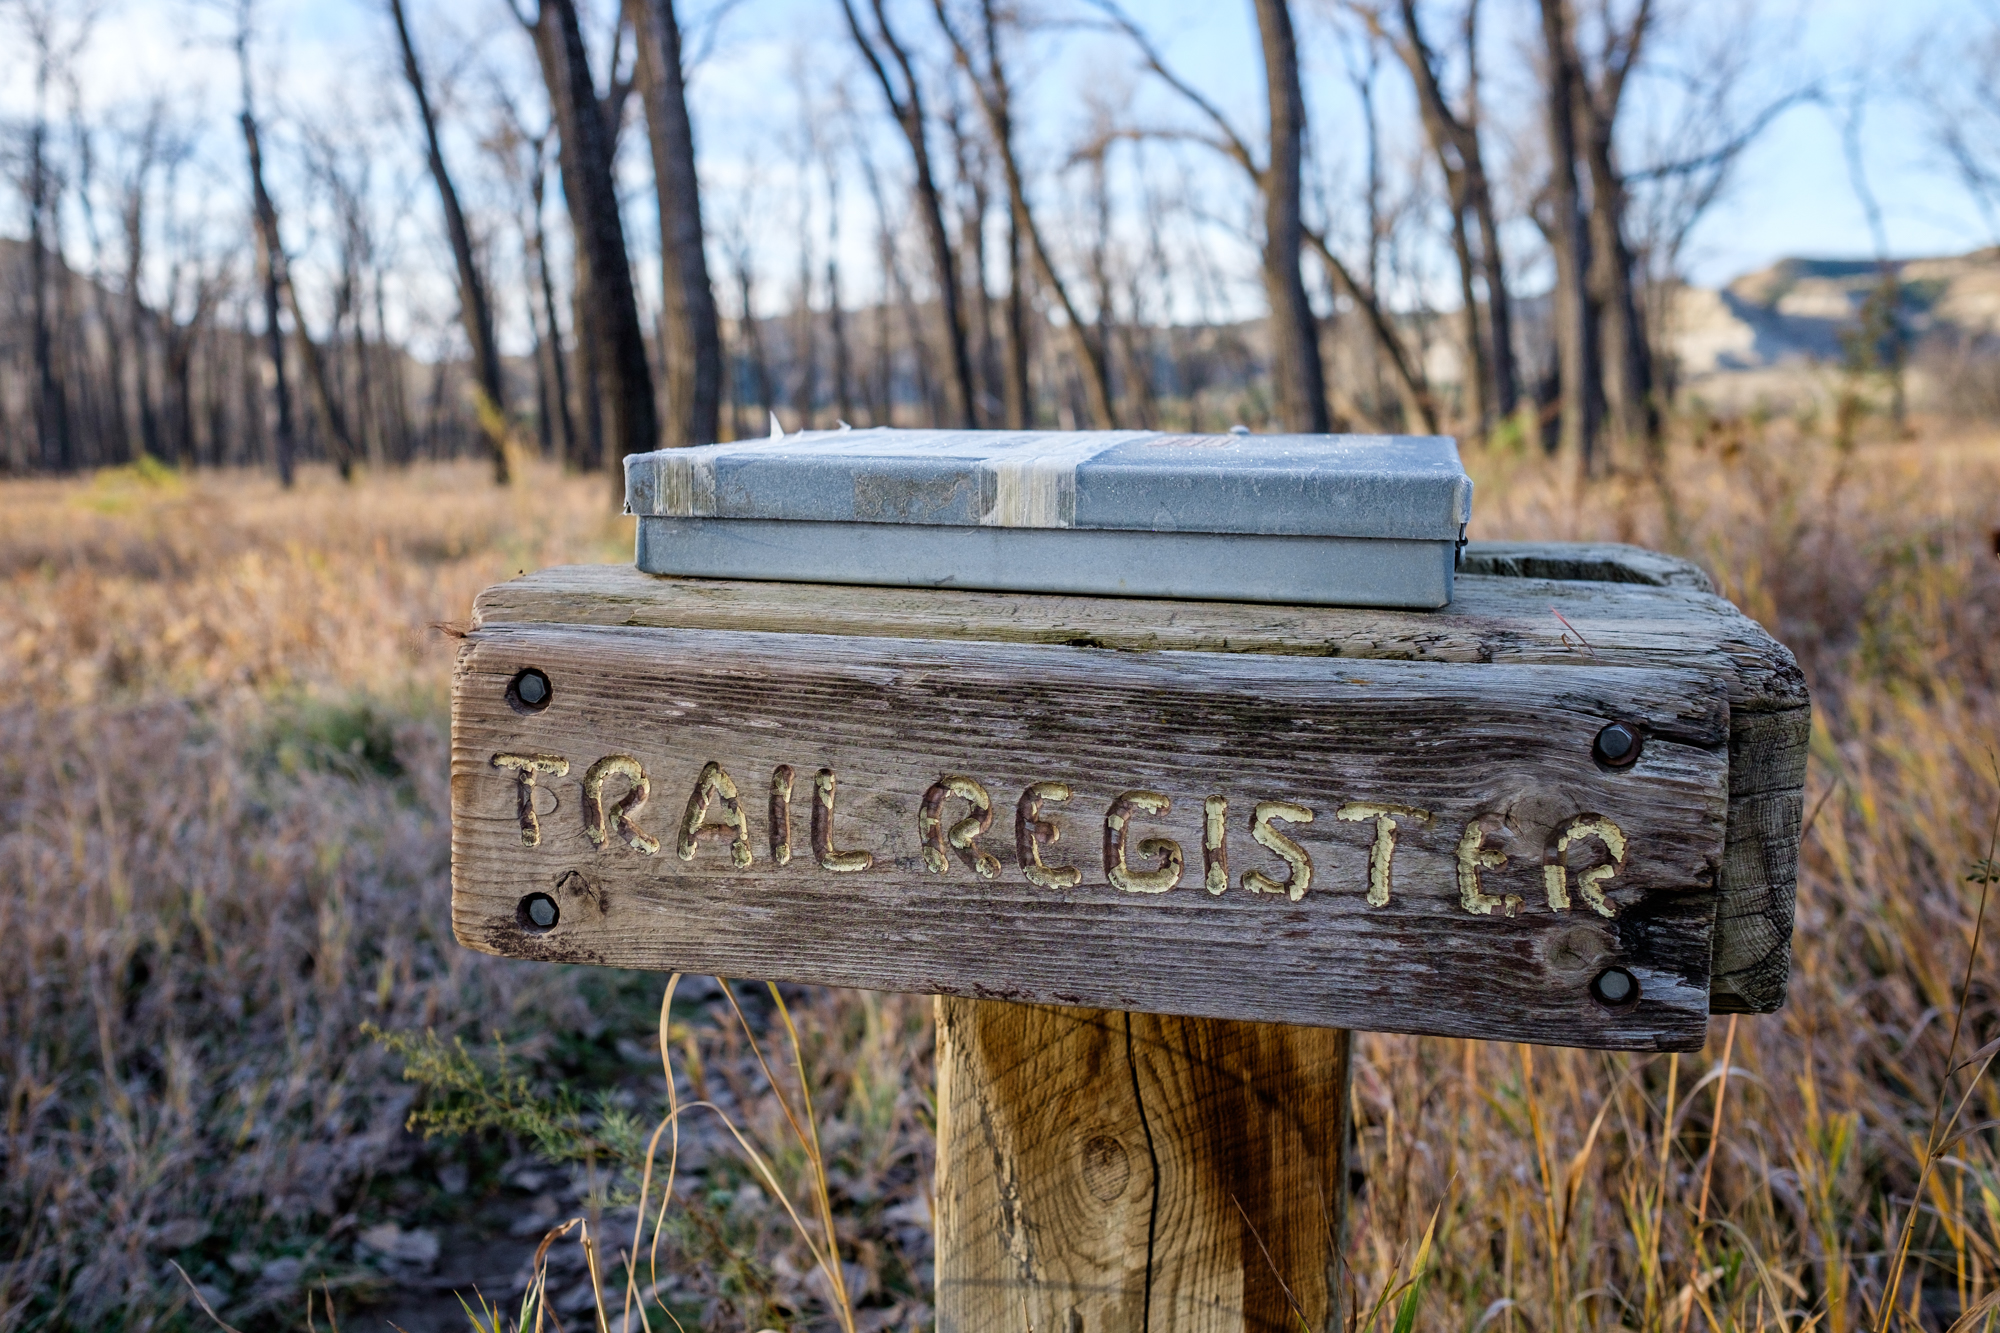 Achenbach Trail is notoriously grueling and can be dangerous if you head out unprepared. Get equipped with the info you need at the Visitor Center and sign the registry before heading out!